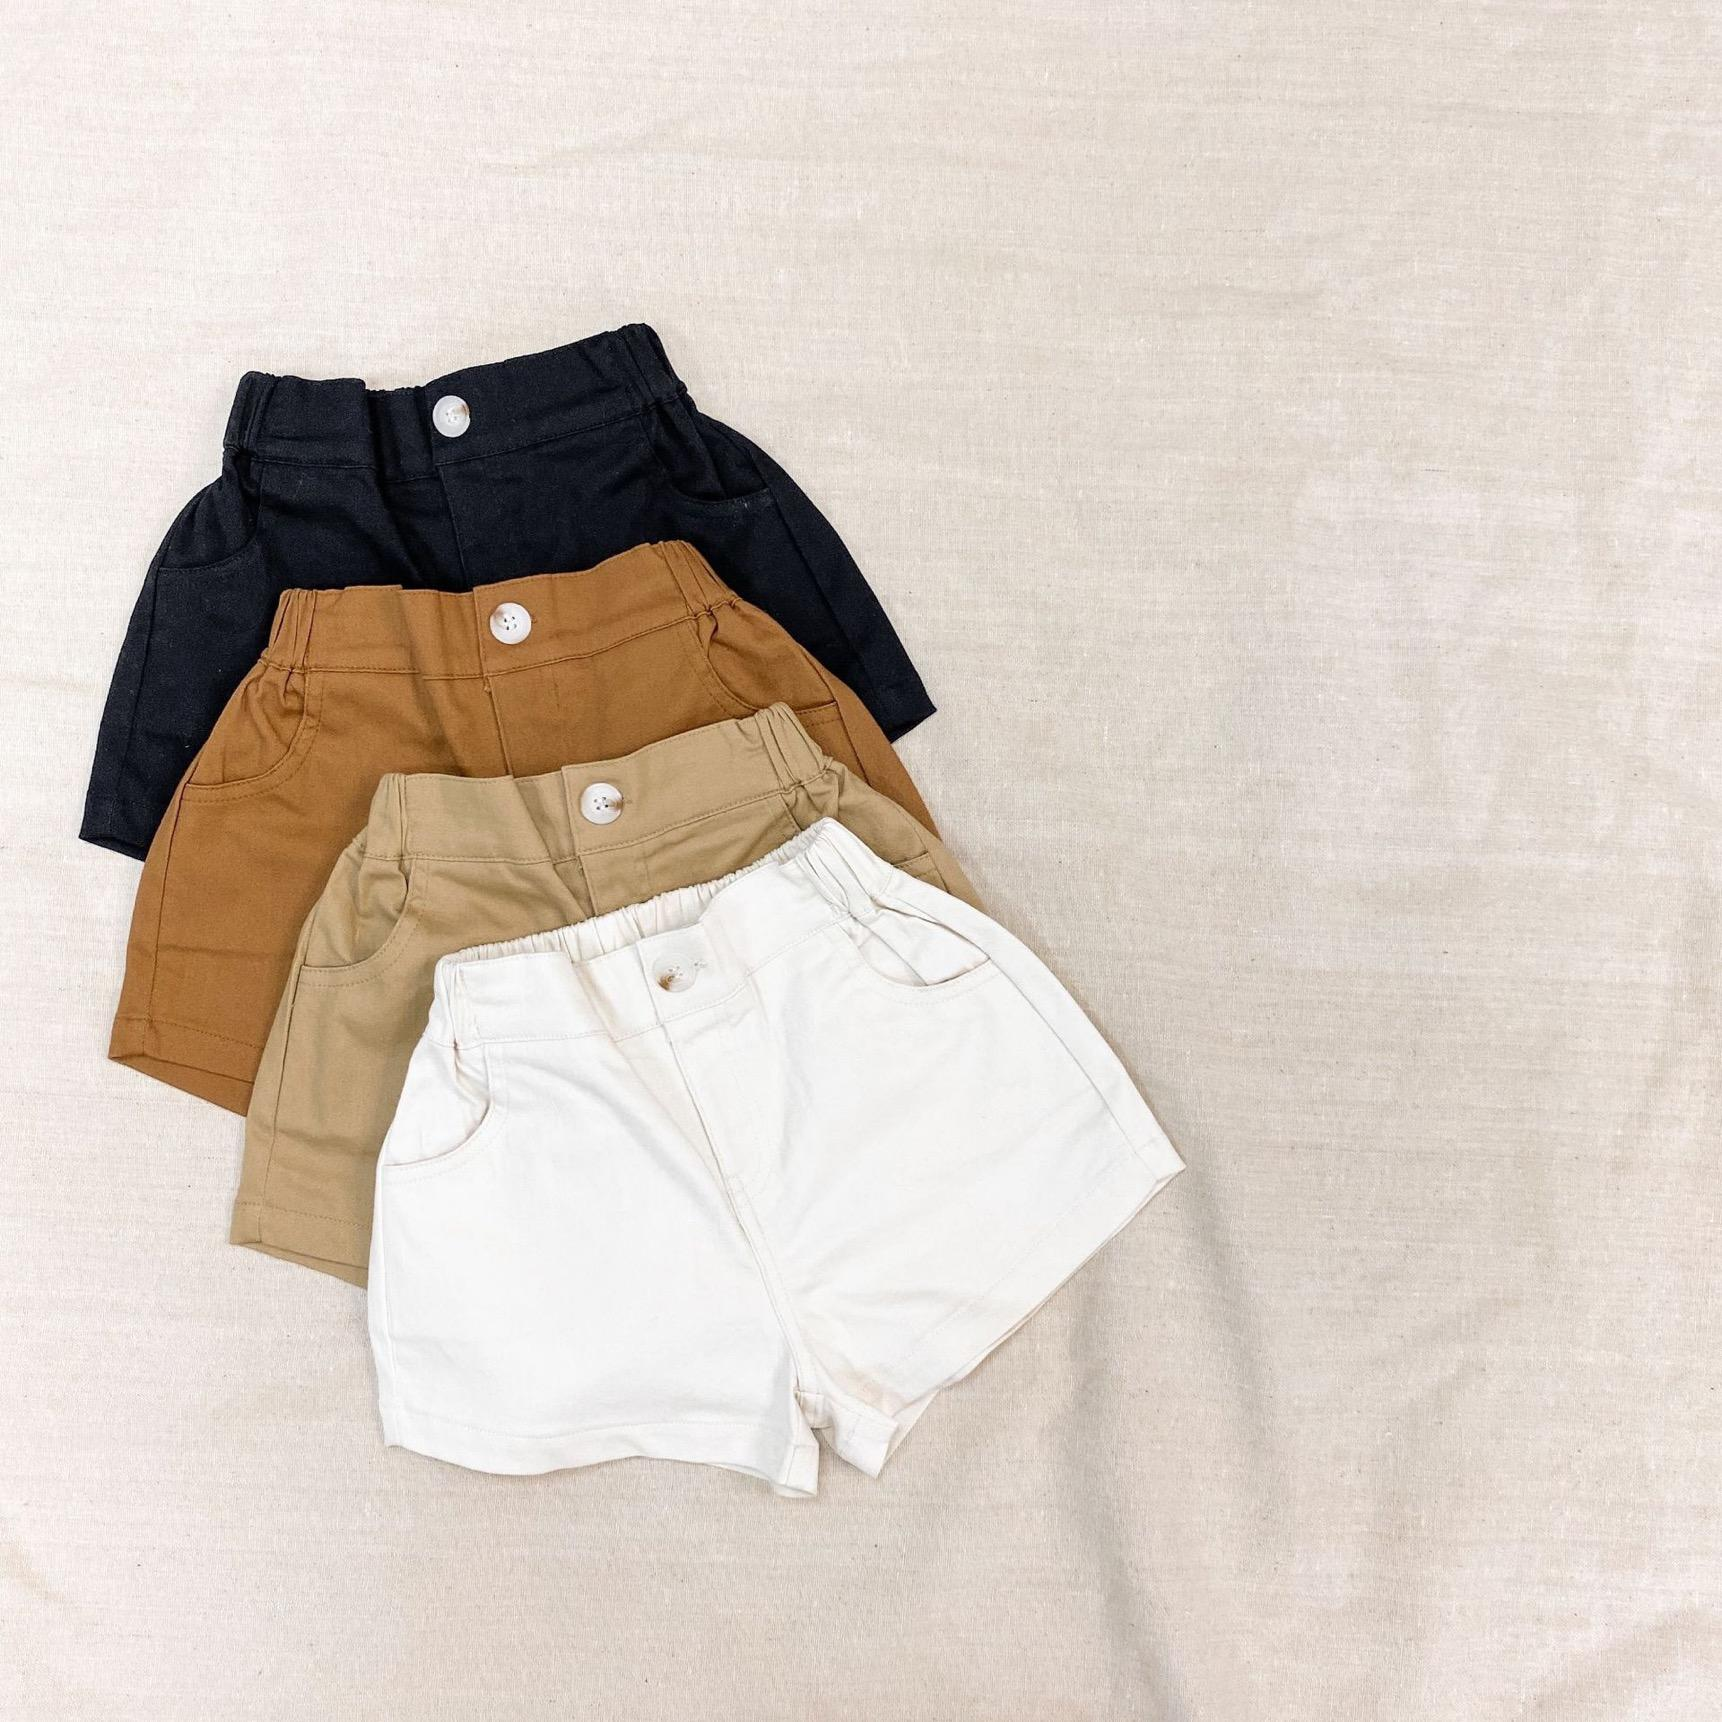 INS Kids Boys Girls Shorts Gilrs Shorts Front Buttons Quality Children Fashions Autumn Summer Unisex Clothes Shorts